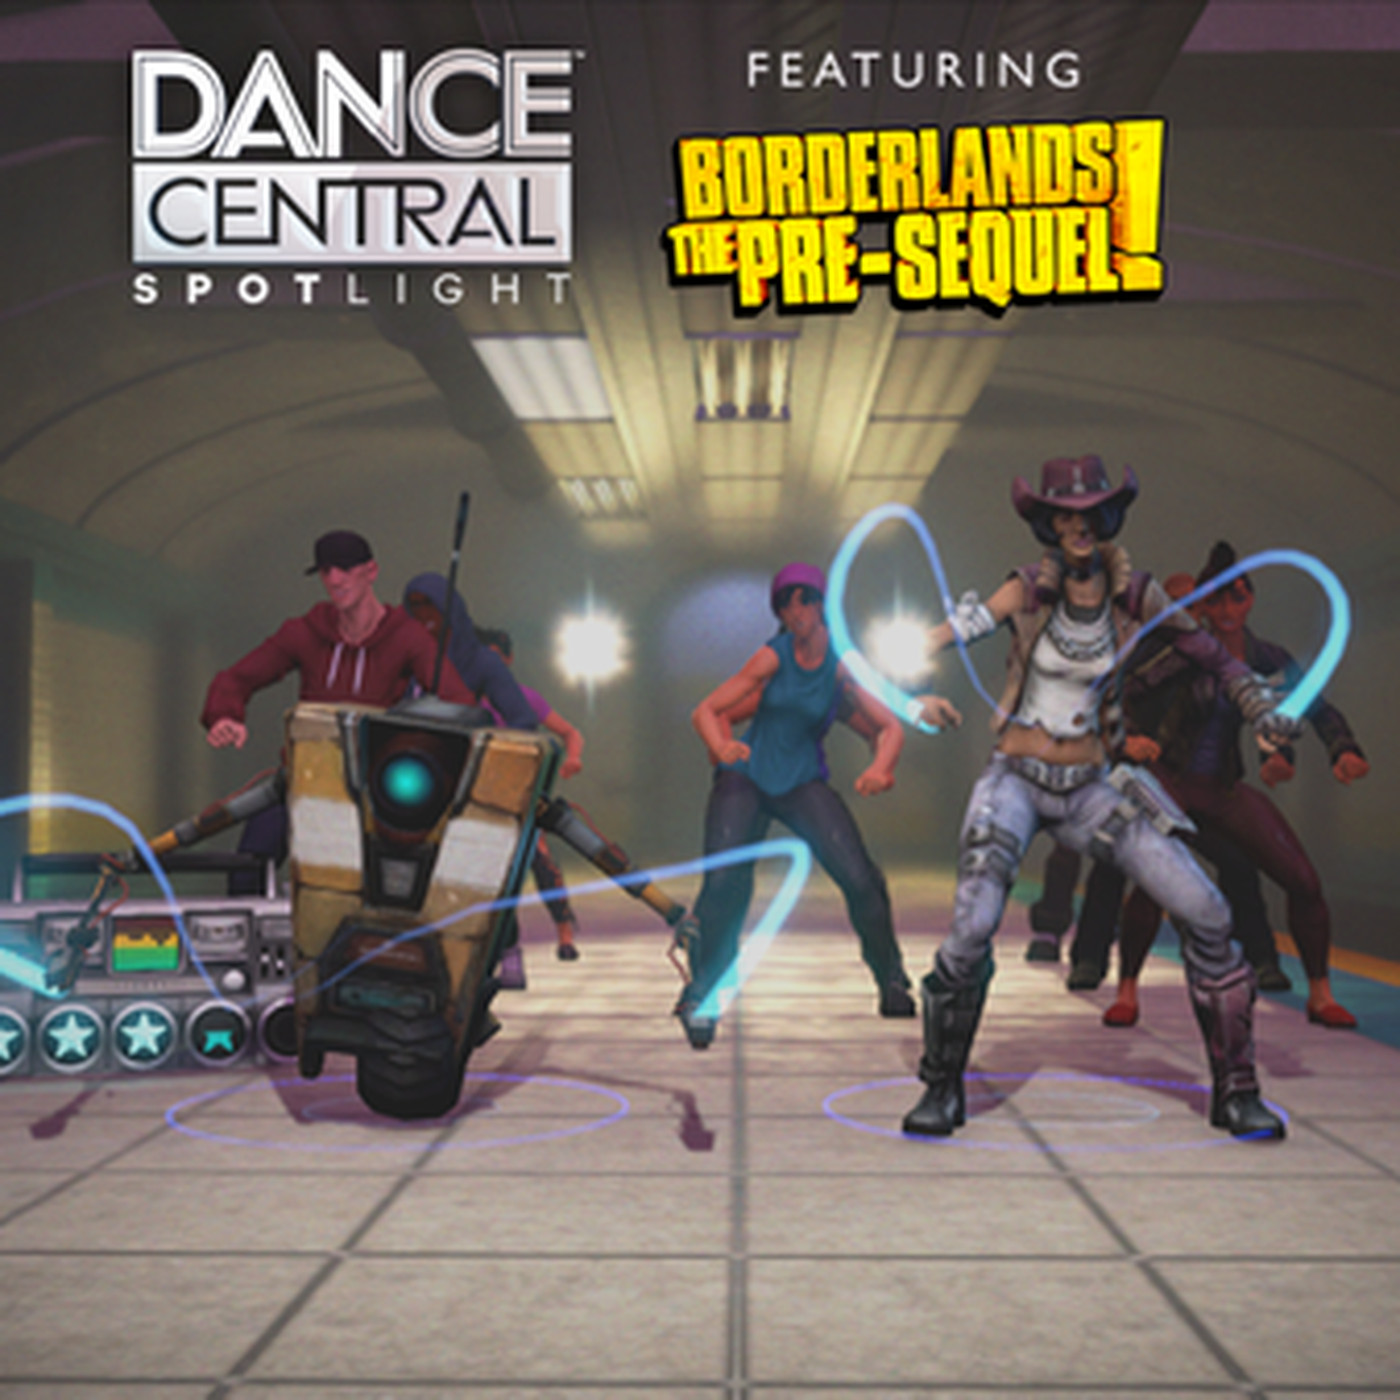 Two Borderlands characters boogie over to Dance Central